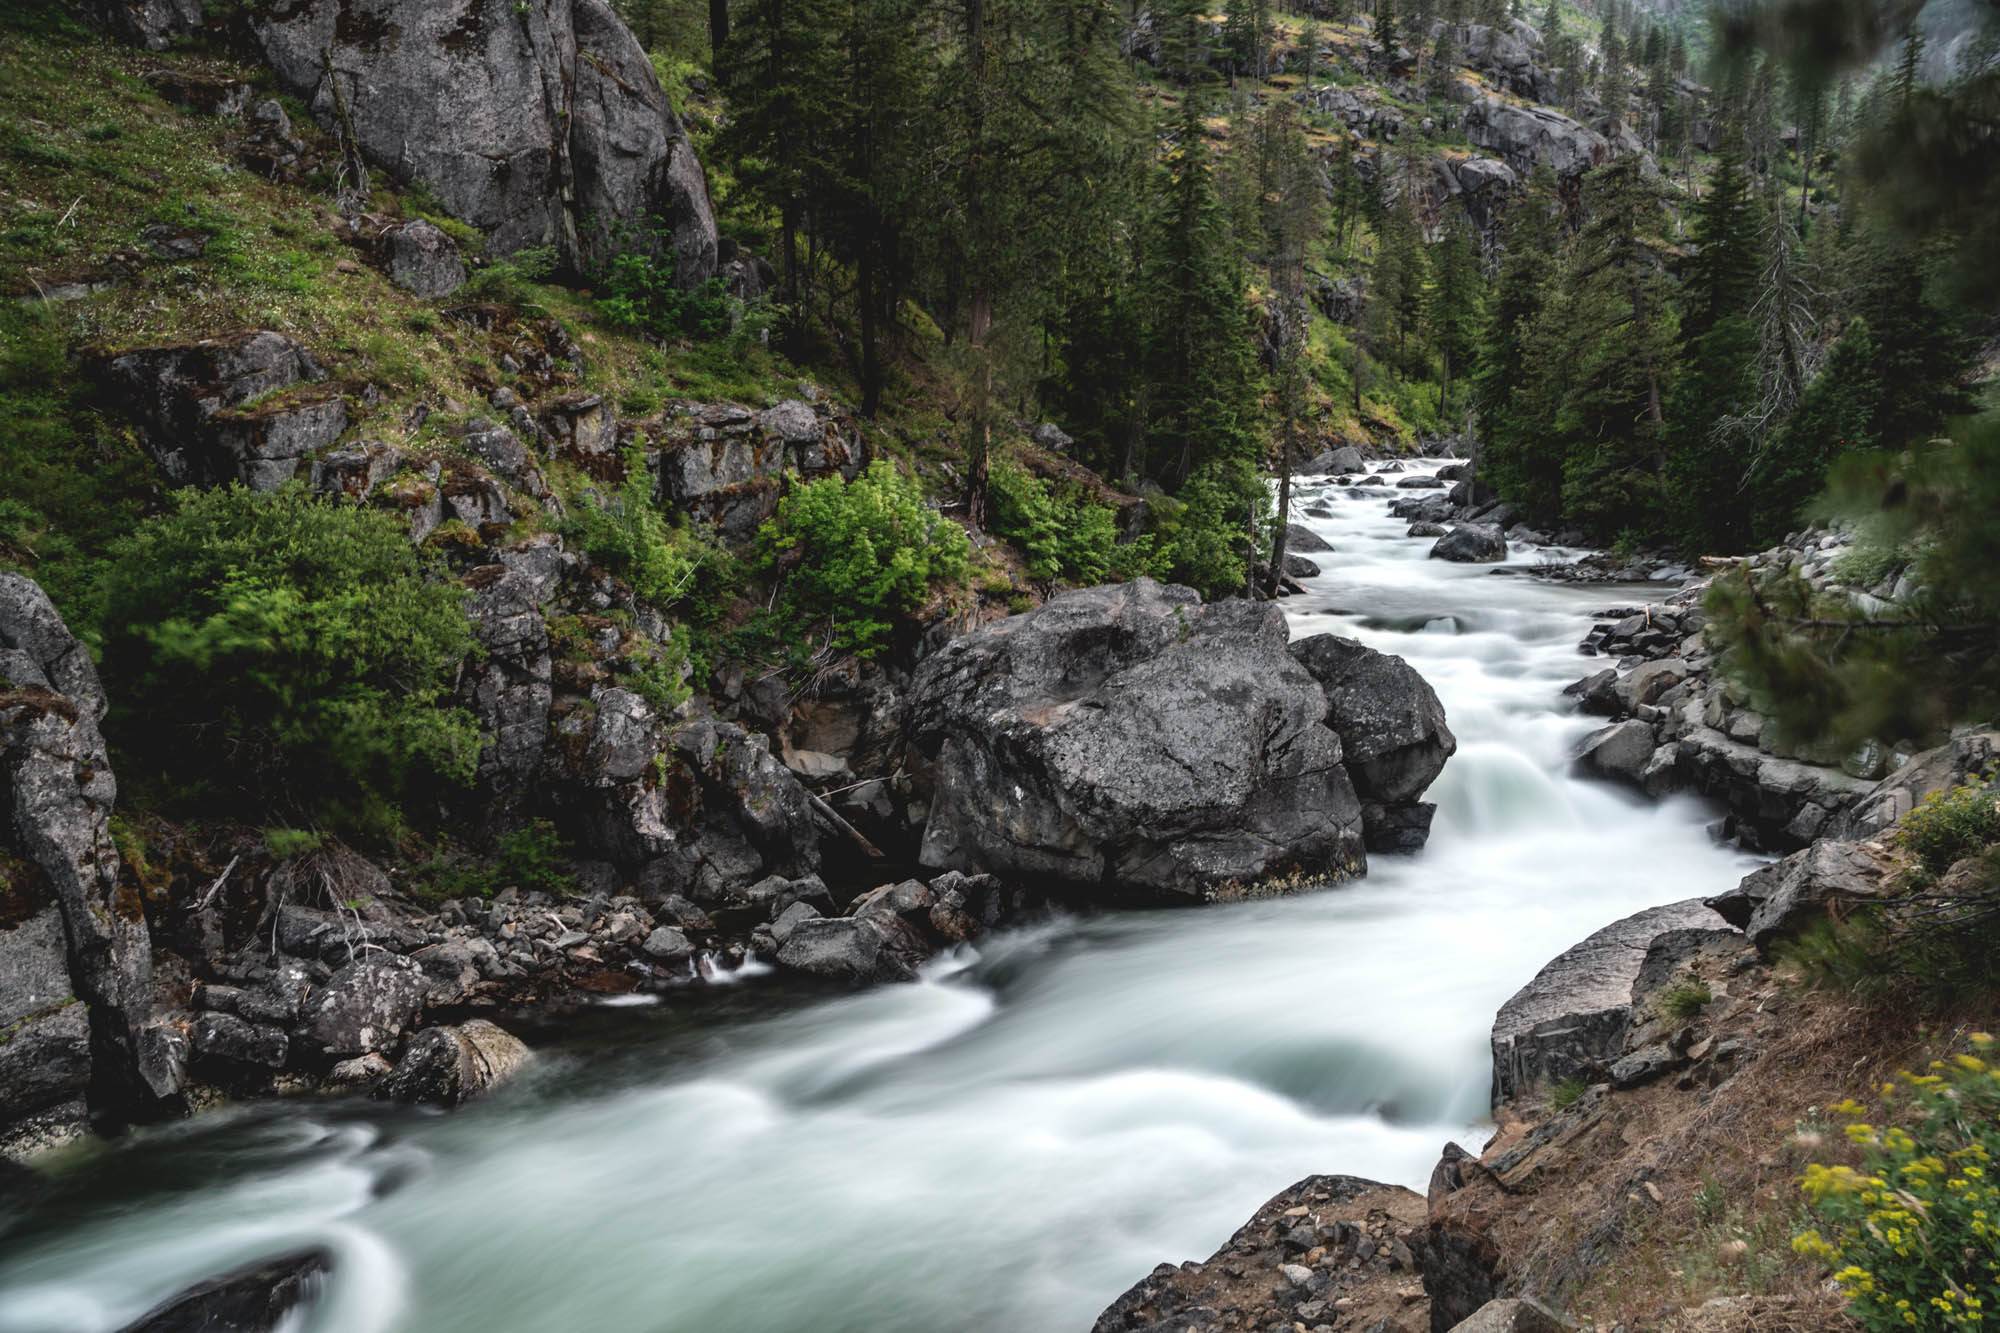 IcicleRiver-Leavenworth-Washington-AmyRolloPhoto-02290-Edit.jpg